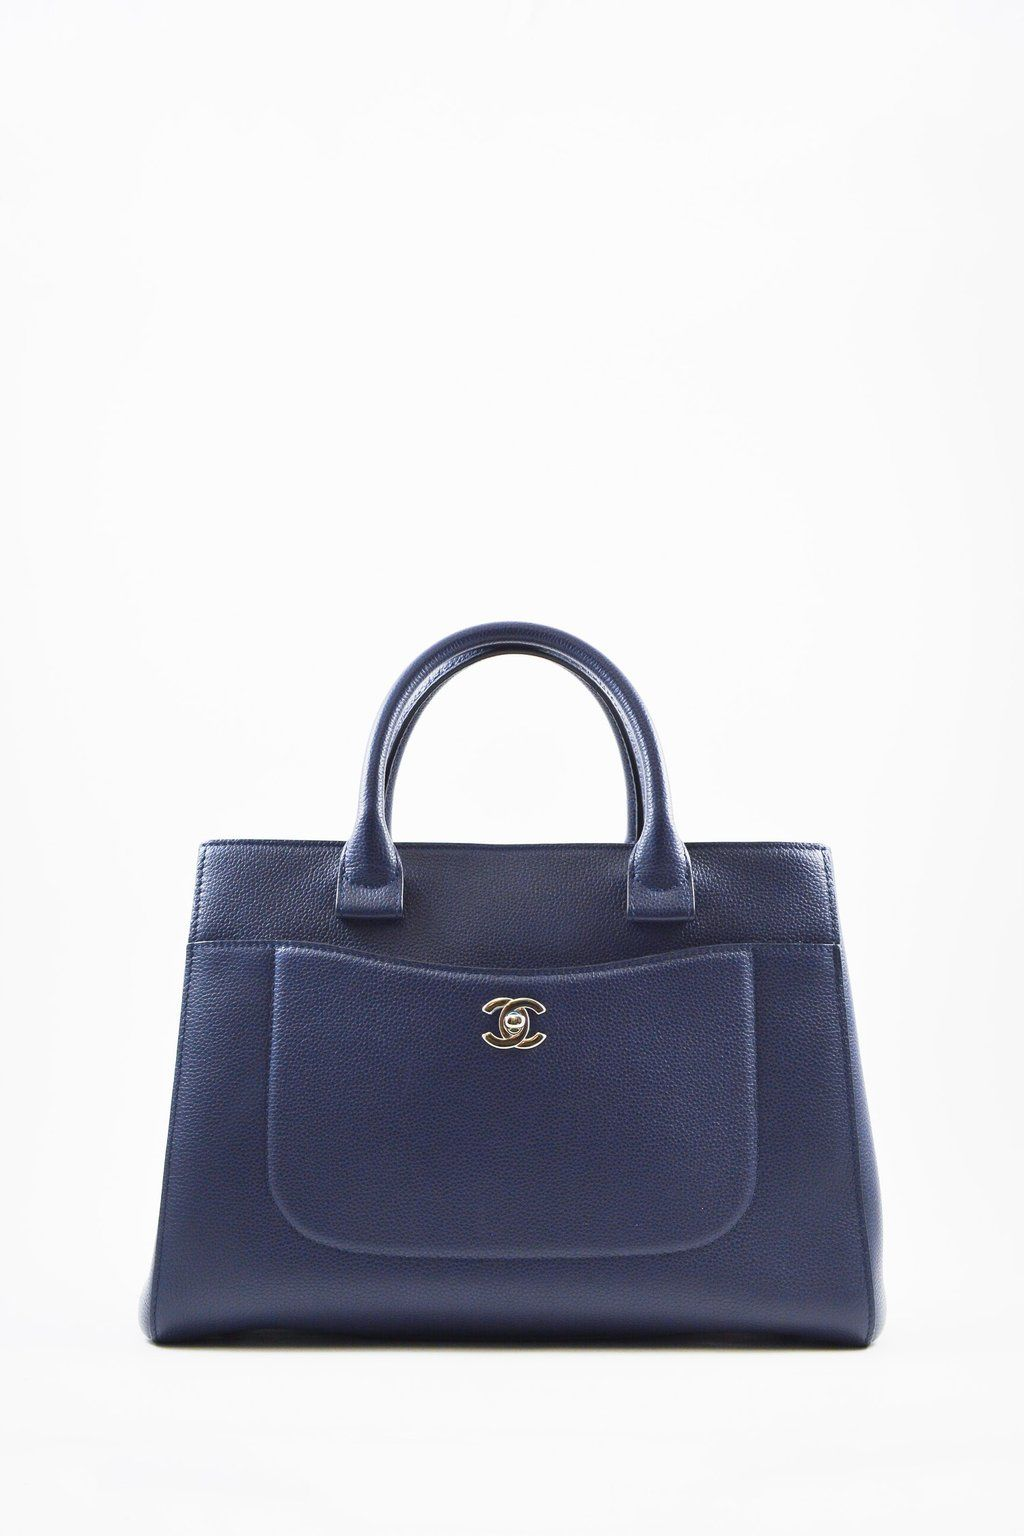 c2175e188d8 Chanel Navy Neo Executive Tote  MineAndYours